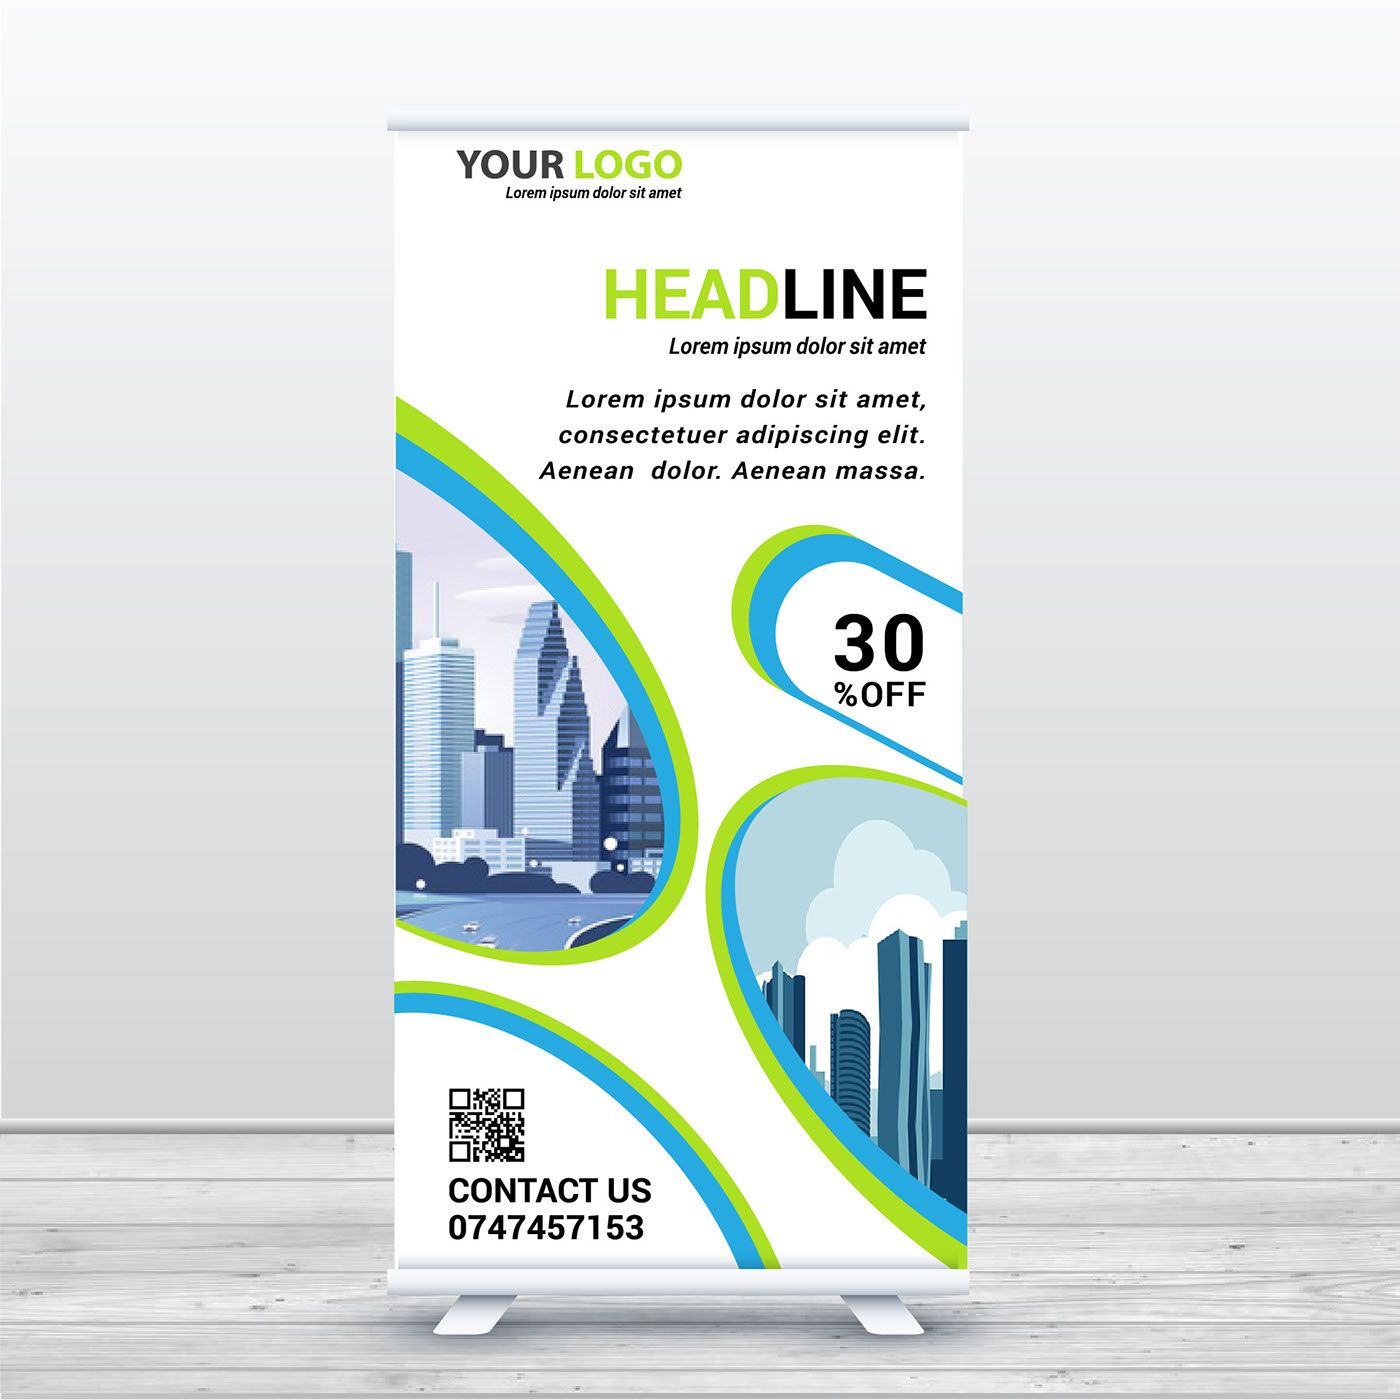 check out my behance project roll up banner https